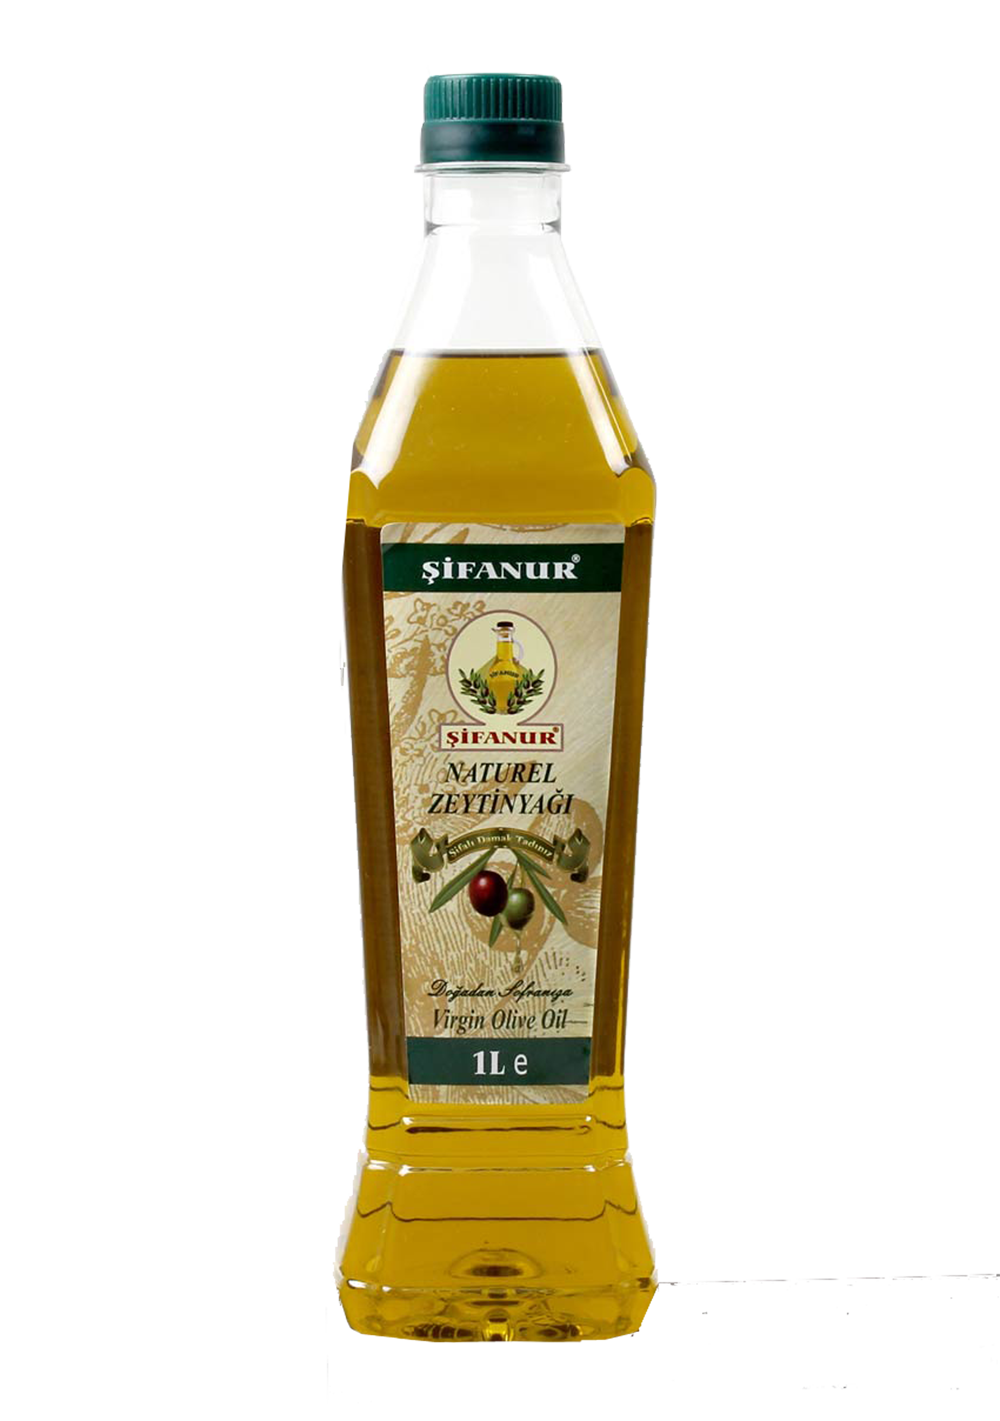 Sifanur Virgin Olive Oil - 1 L Pyramid Image